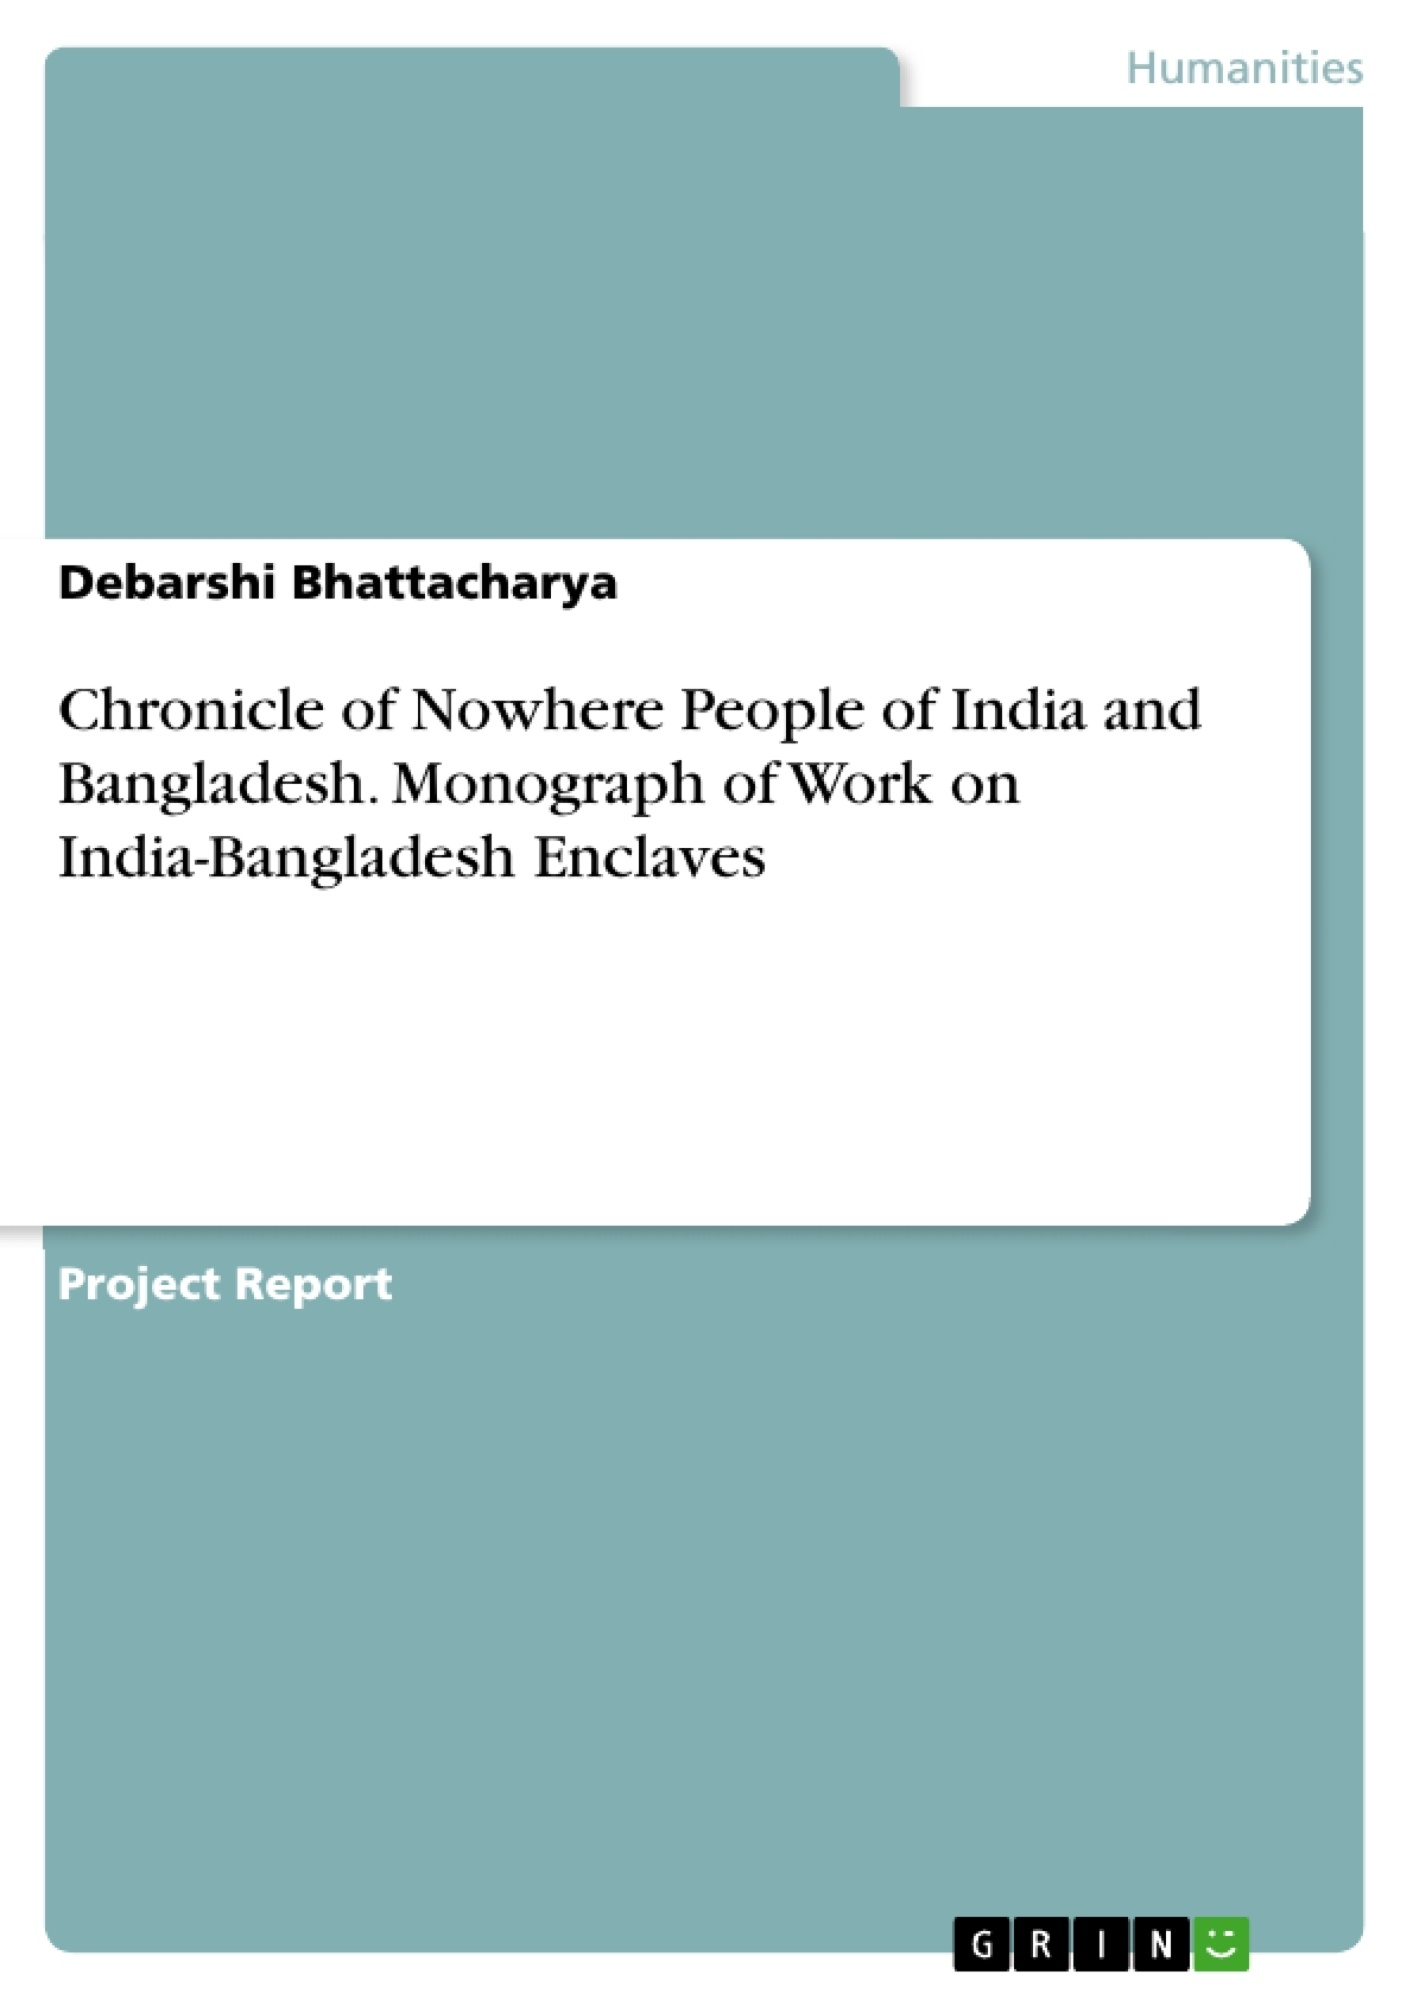 Title: Chronicle of Nowhere People of India and Bangladesh. Monograph of Work on India-Bangladesh Enclaves